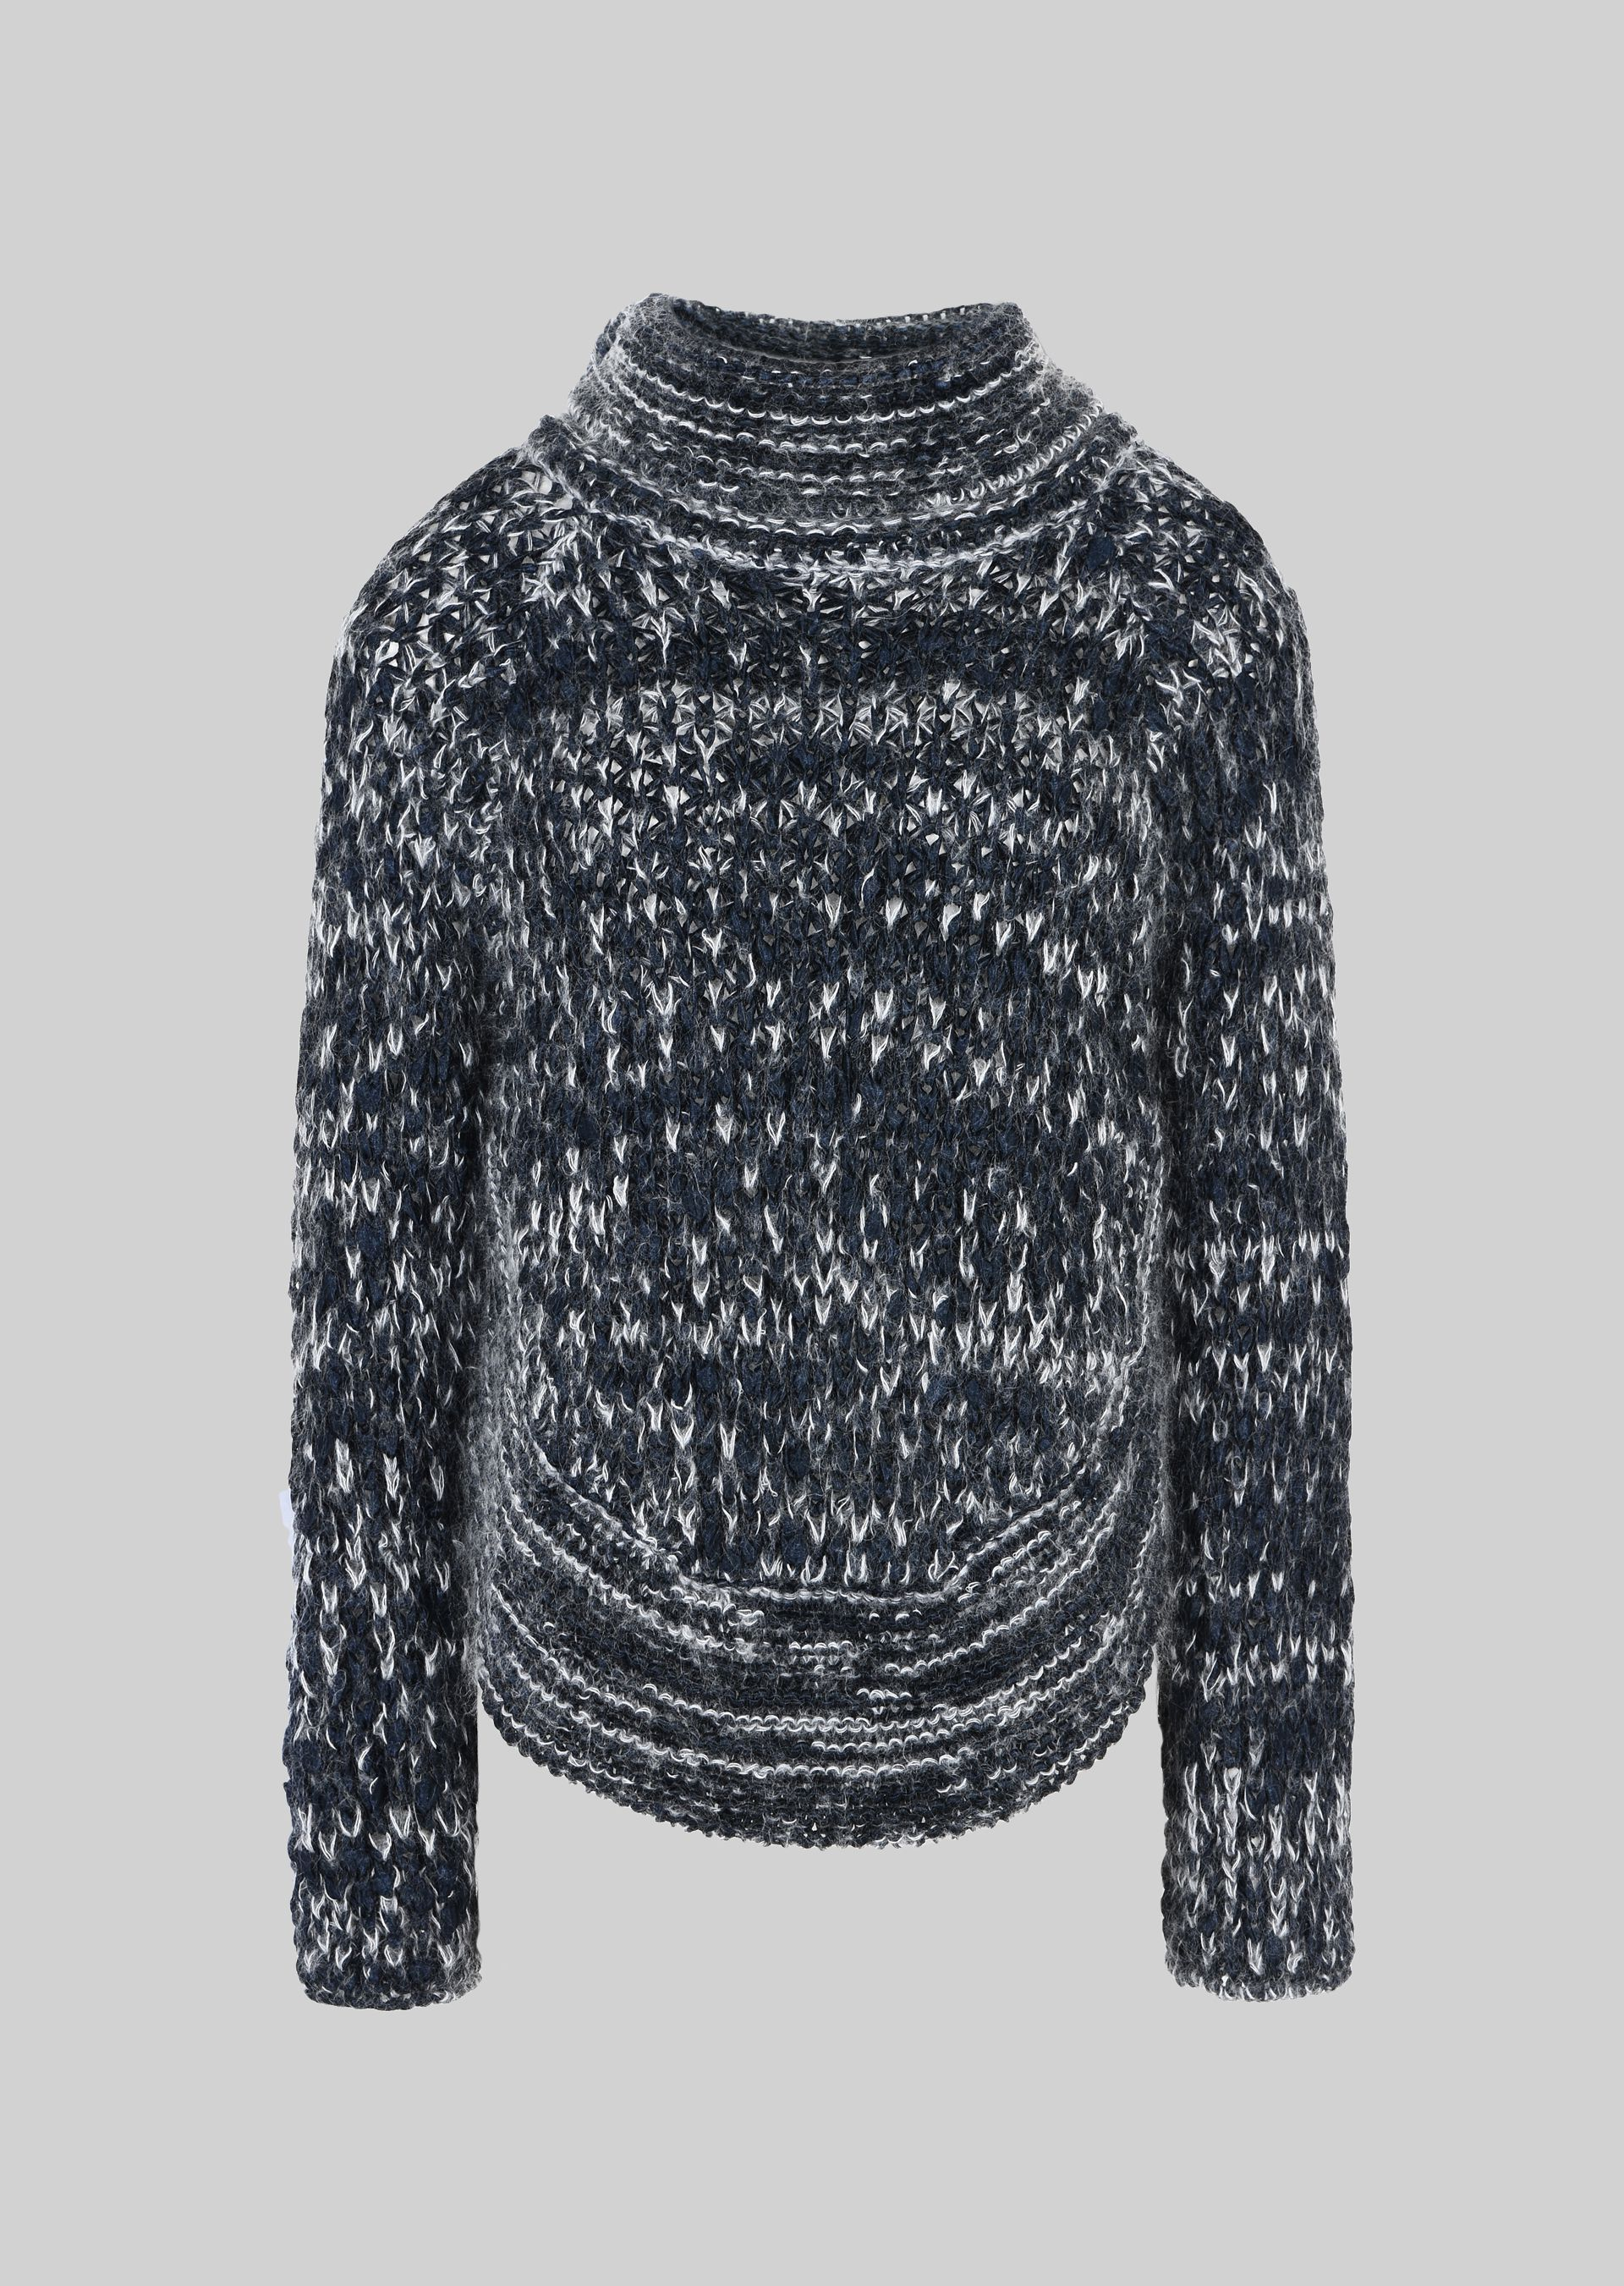 GIORGIO ARMANI PONCHO SWEATER IN WOOL AND MOHAIR Sweater D r